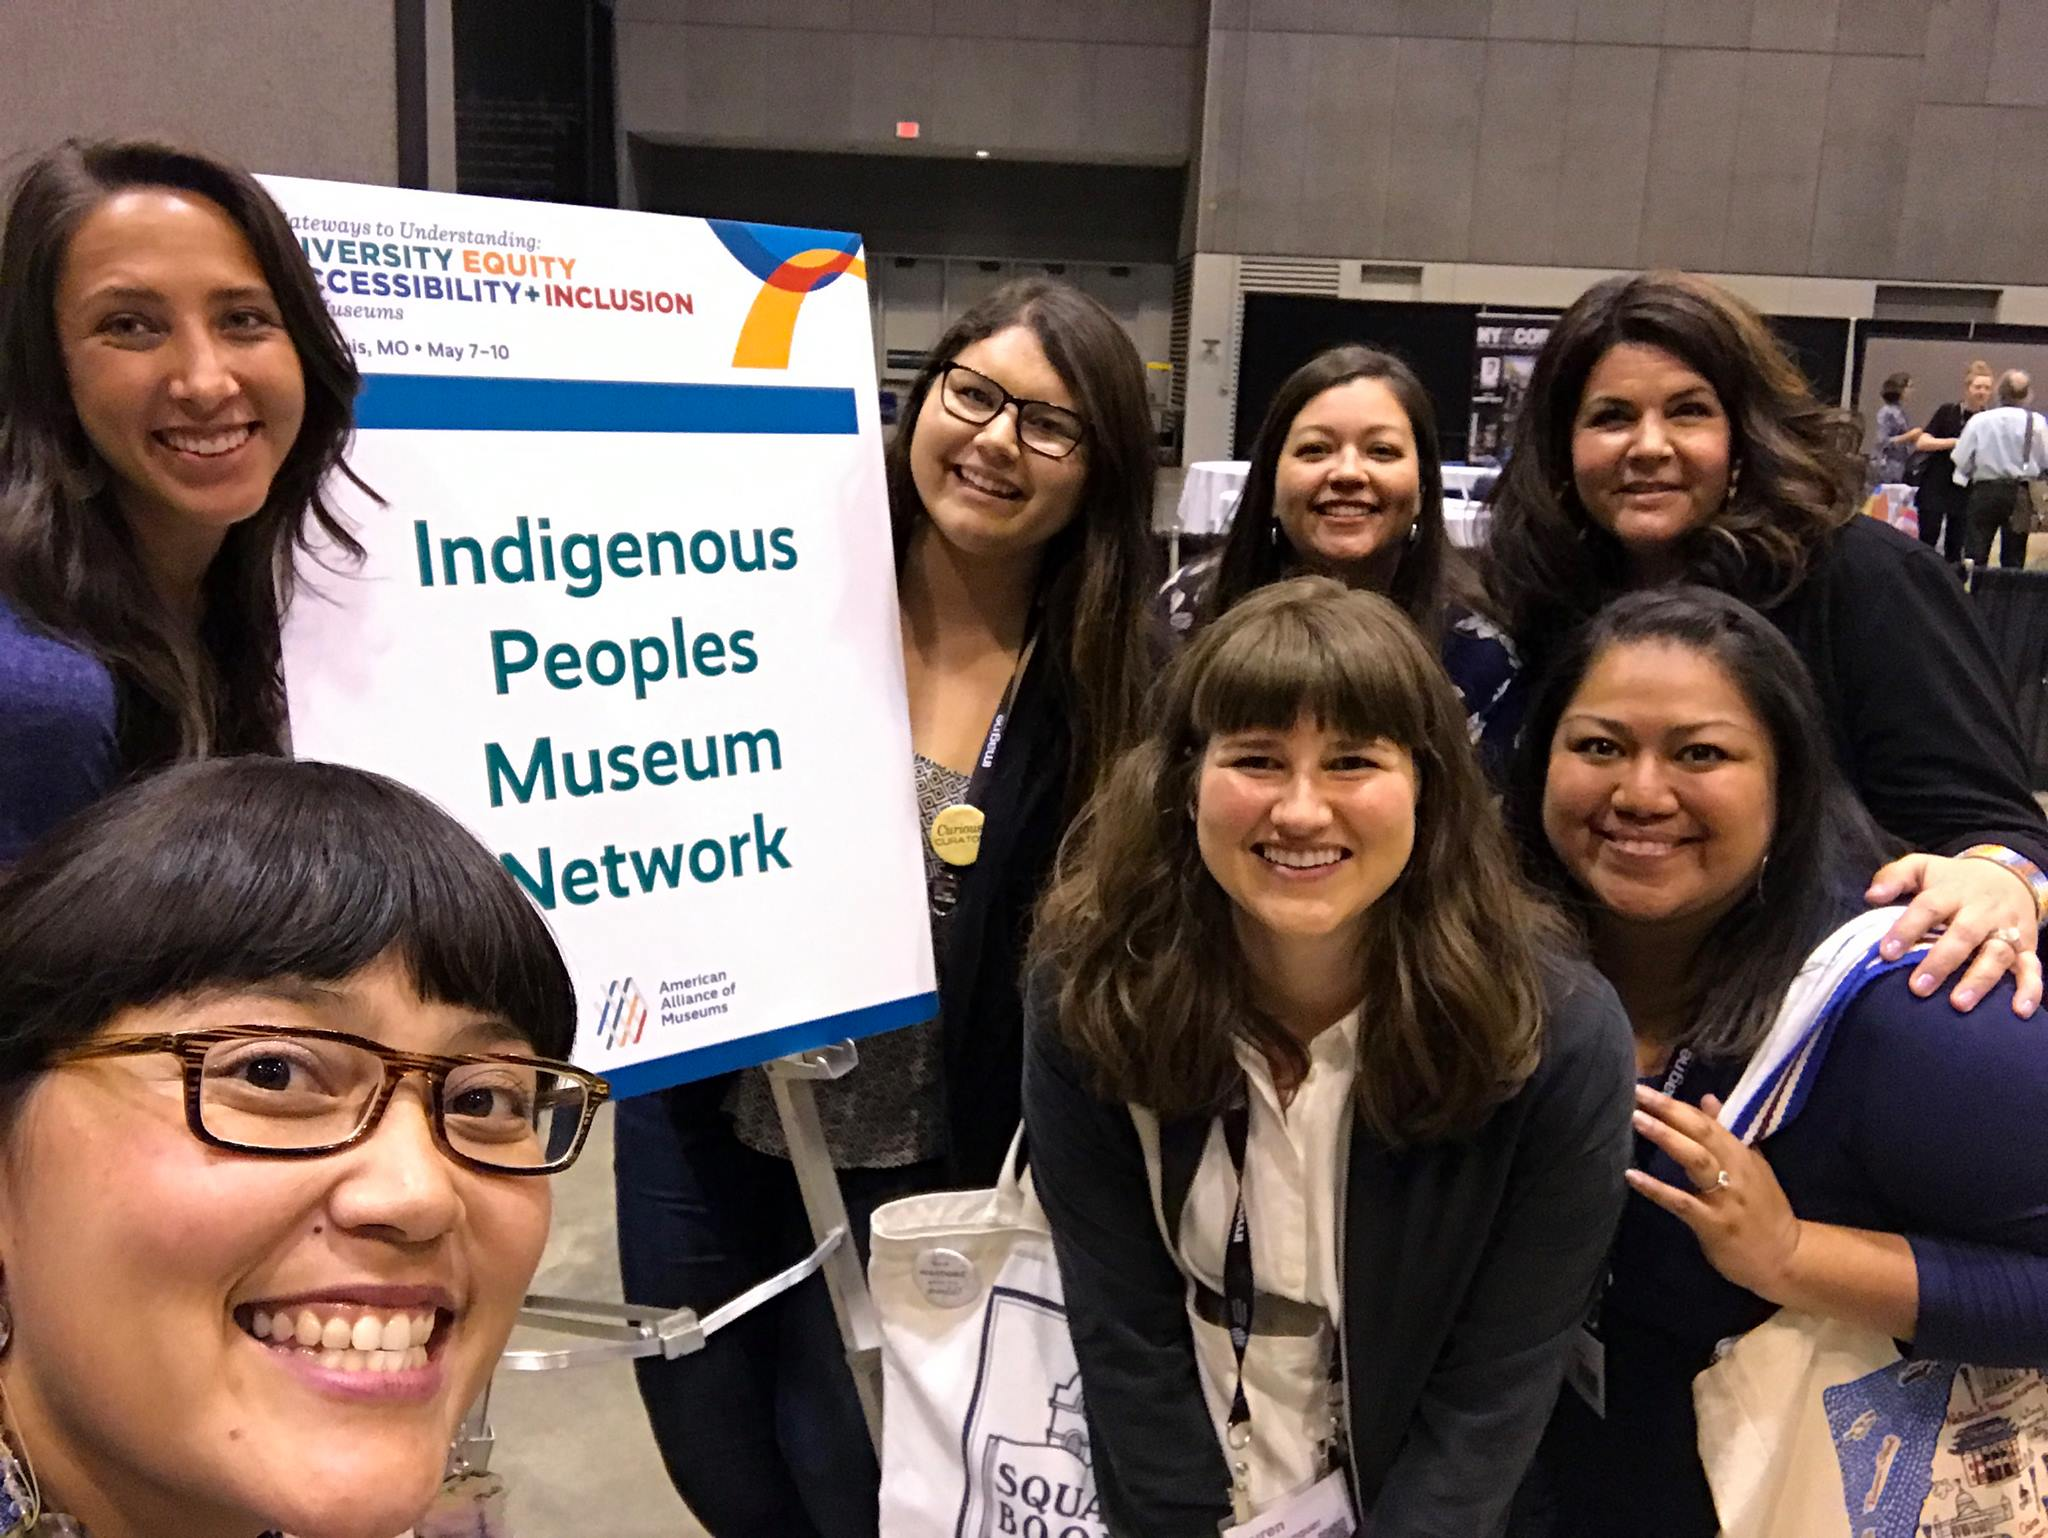 An image of a group of people next to a sign for the Indigenous Peoples Museum Network professional network. They are smiling and standing together.